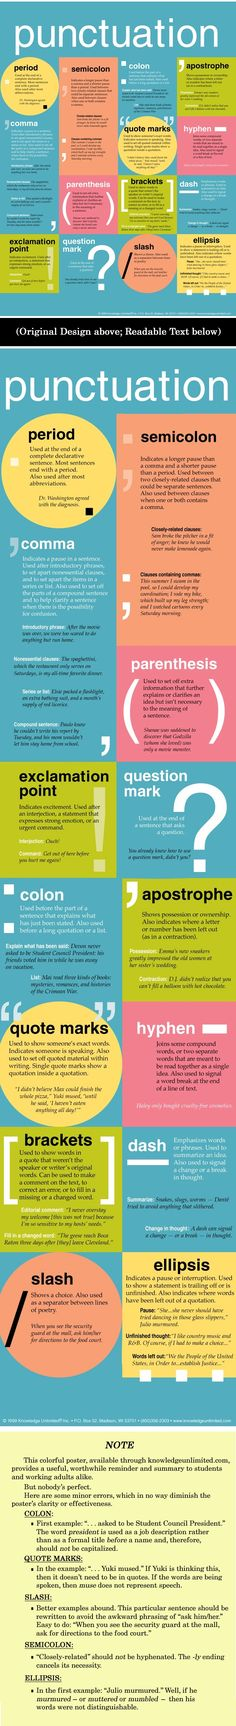 Punctuation in English Teaching Writing, Writing Skills, Writing Tips, Writing Prompts, Teaching Resources, Essay Writing, Academic Writing, Writing Resources, Writing Services